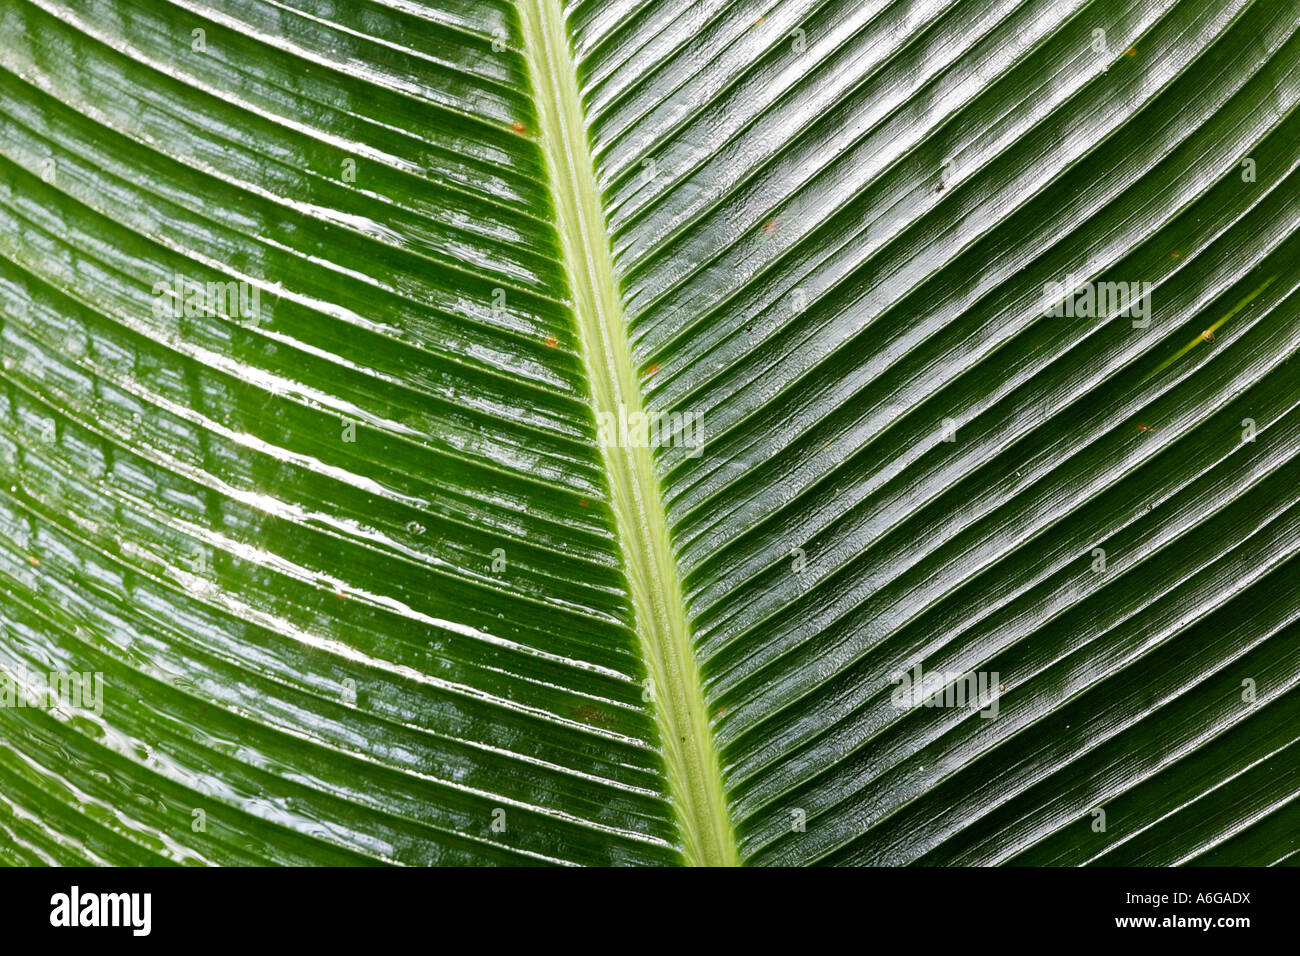 Leaf from Heliconia, Costa Rica - Stock Image